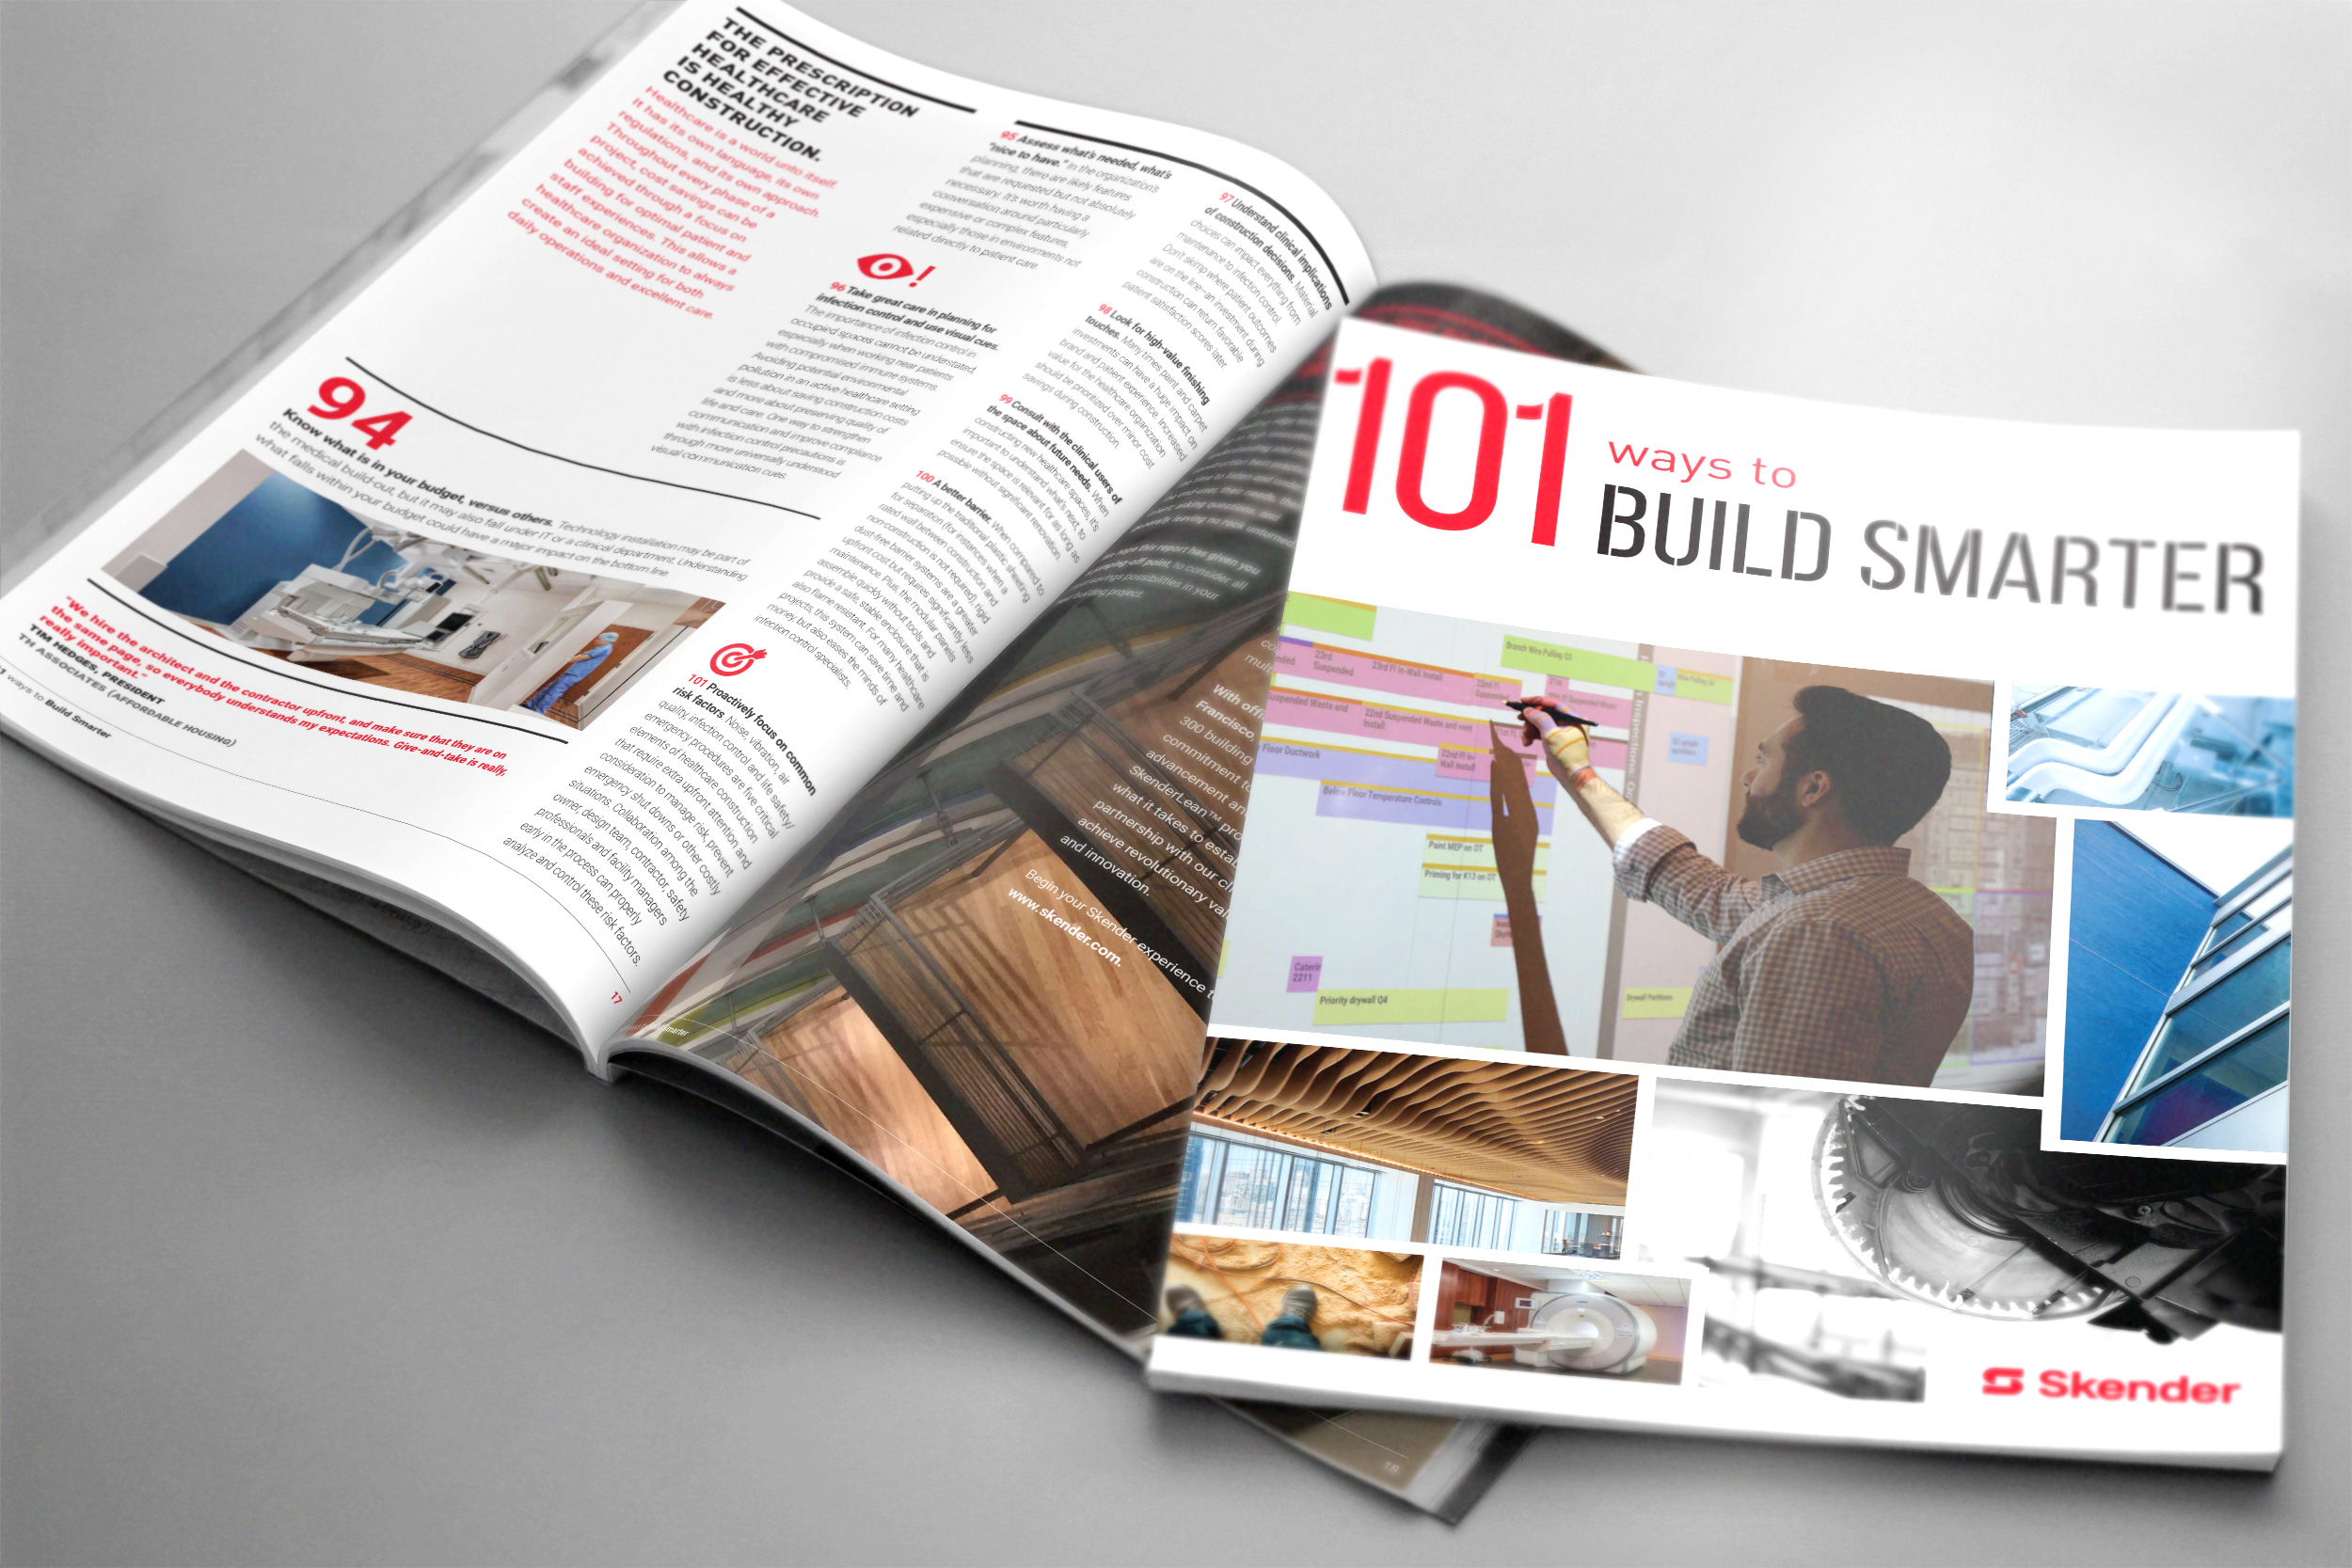 Newsmedia archive skender skender releases 101 ways to build smarter ebook featuring ideas to offset rapidly escalating construction prices fandeluxe